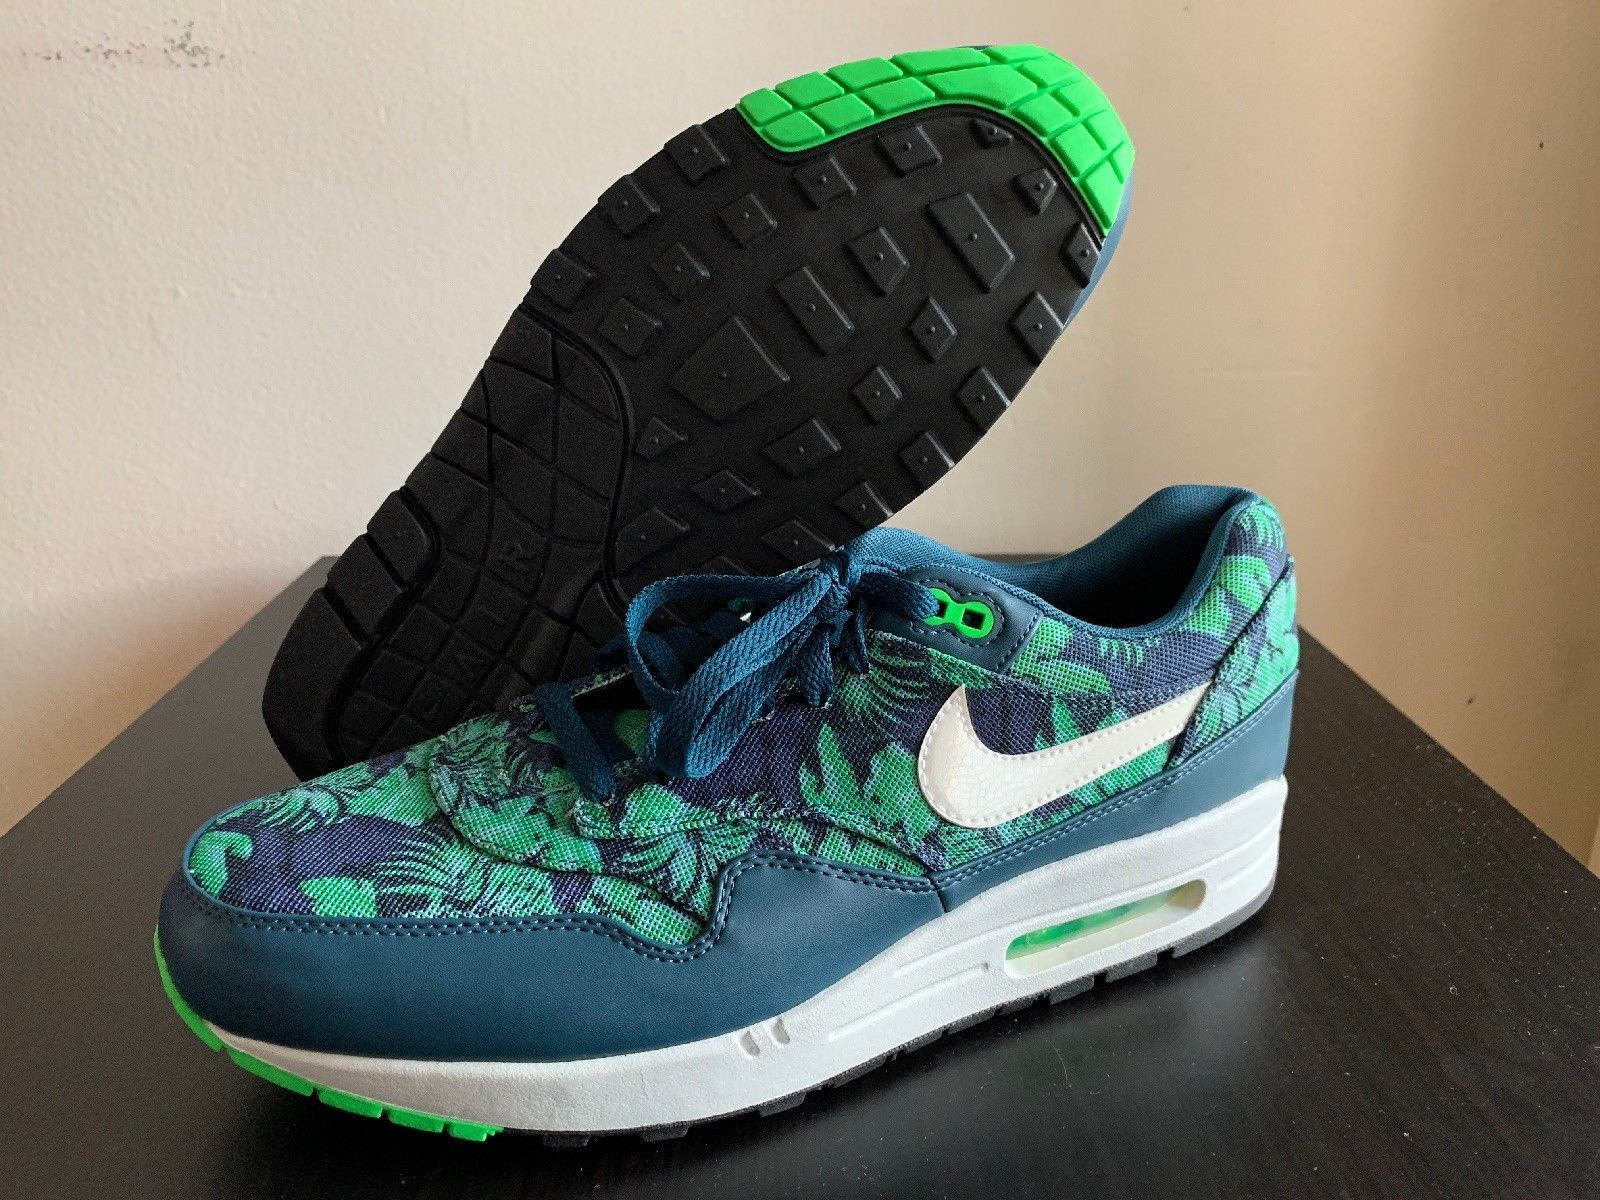 Nike Air Max 1 GPX Blue Floral 684174 400 and 21 similar items